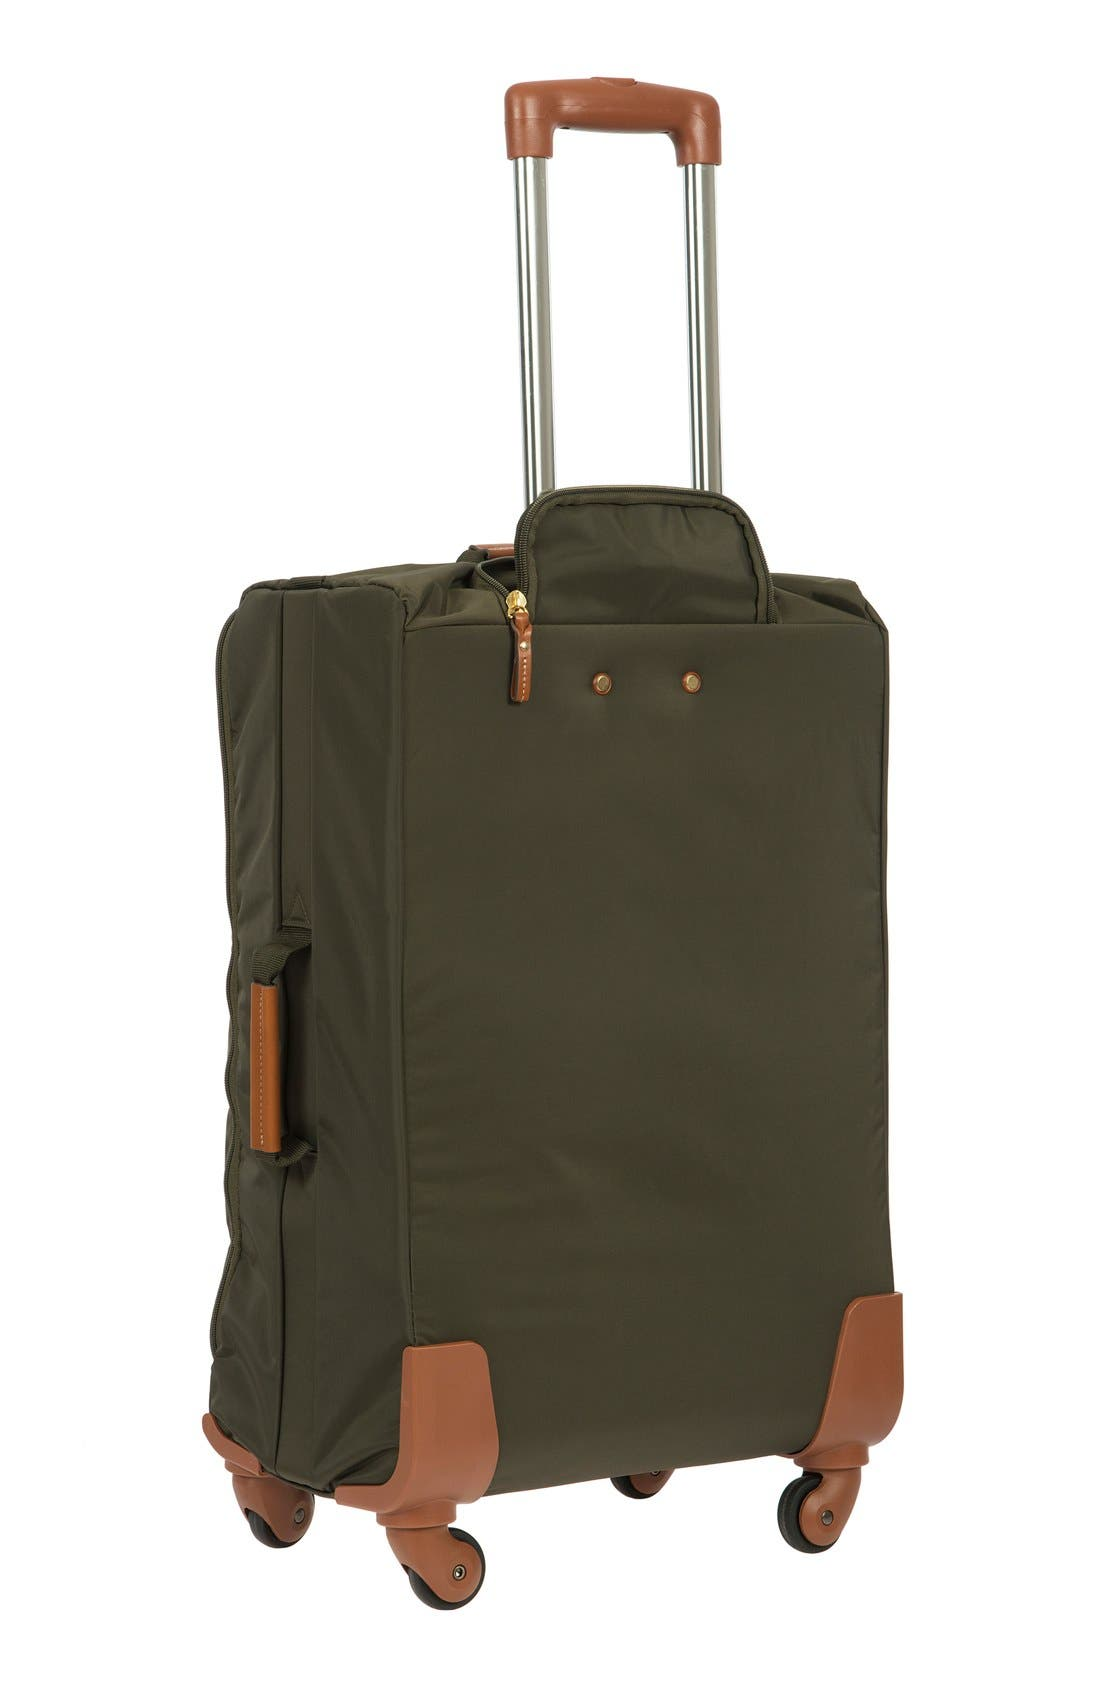 X-Bag 25-Inch Spinner Suitcase,                             Alternate thumbnail 9, color,                             OLIVE